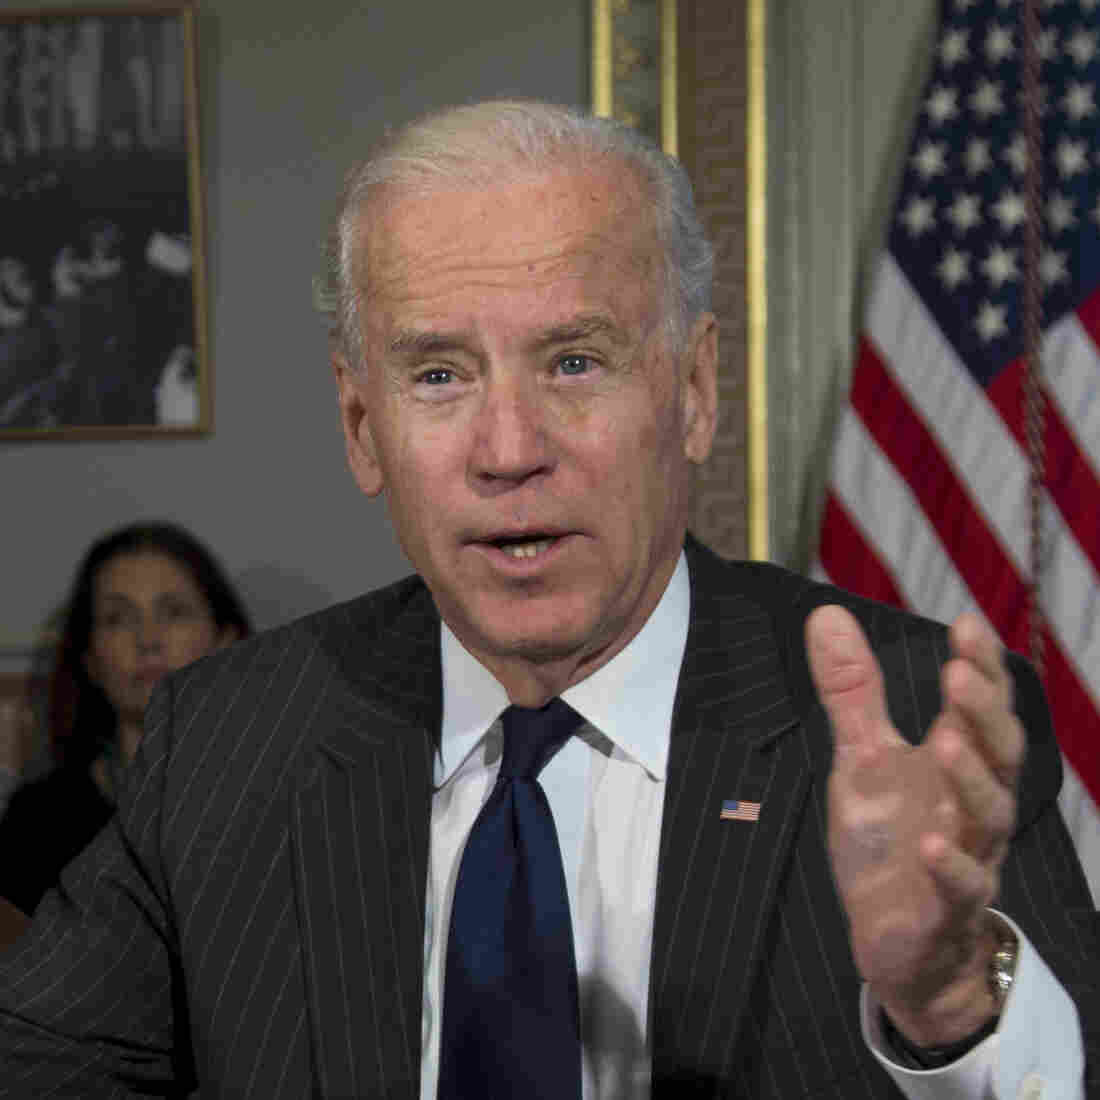 Administration Still Fighting For Assault Weapons Ban, Biden Says